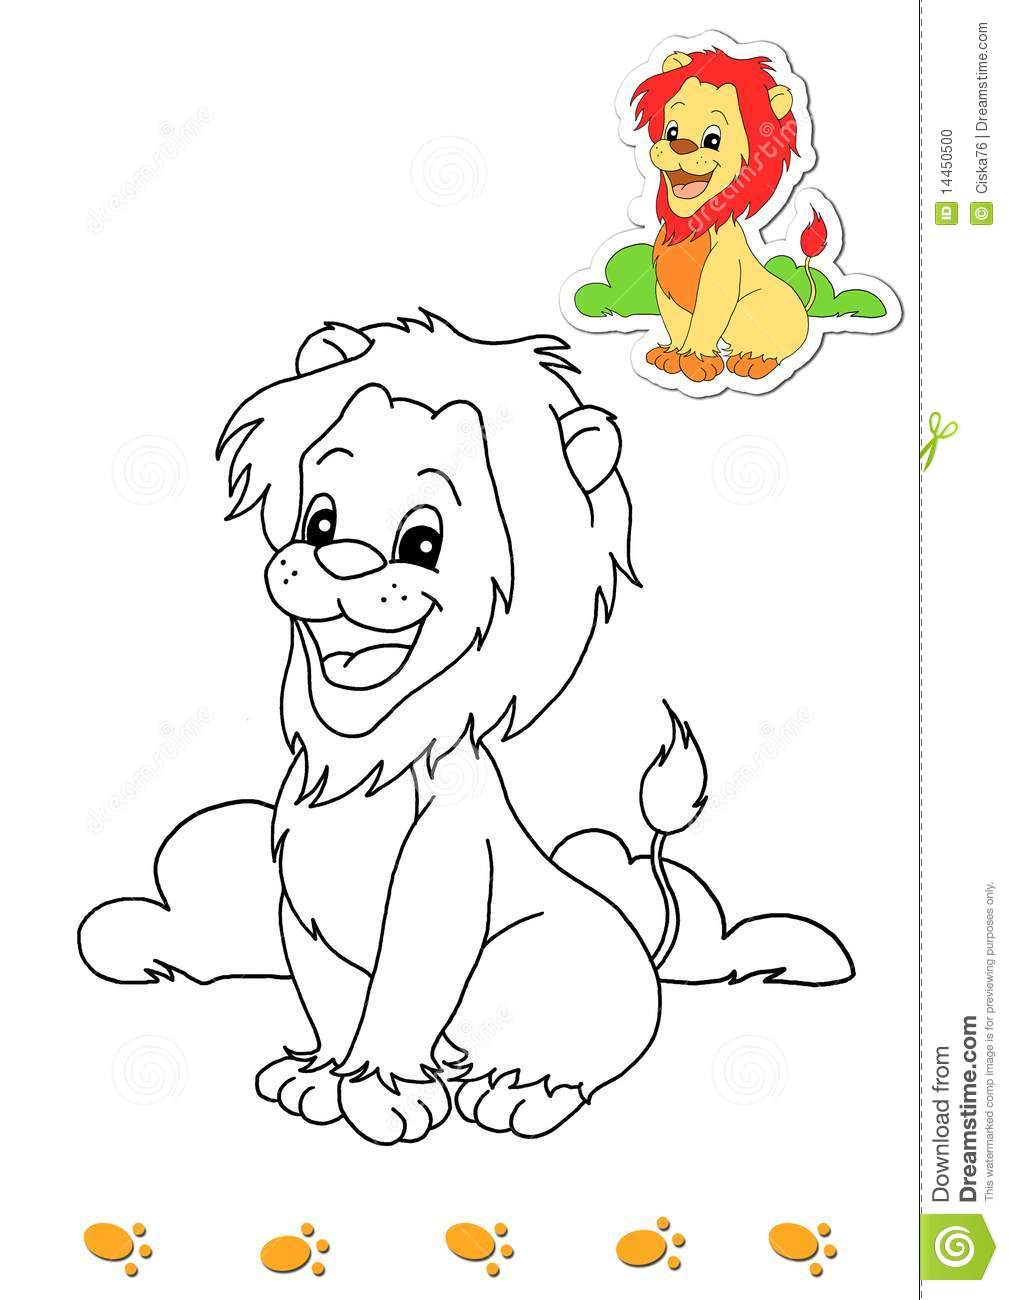 Coloring book of animals 4 - lion